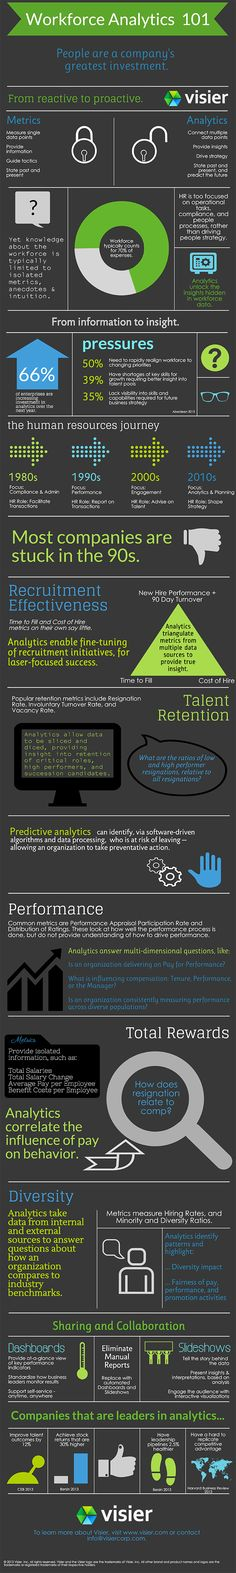 Workforce Analytics 101 Infographic from Visier